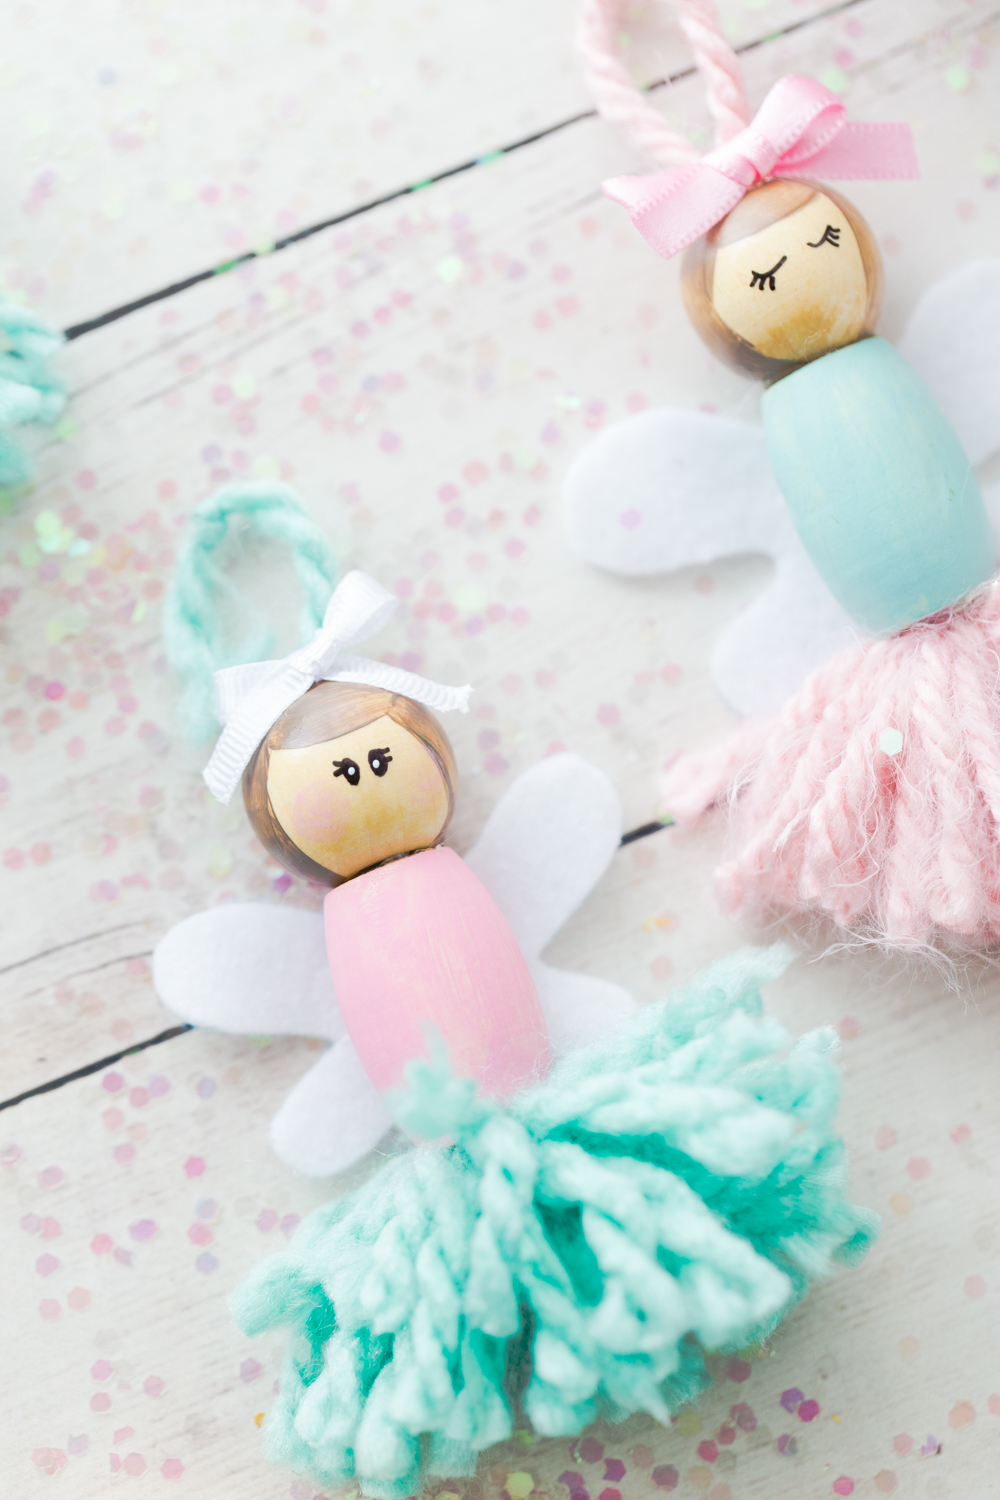 These Pom Pom Ballerina Fairies are the sweetest project for any little girl! They make great little bookshelf decorations or ornaments.